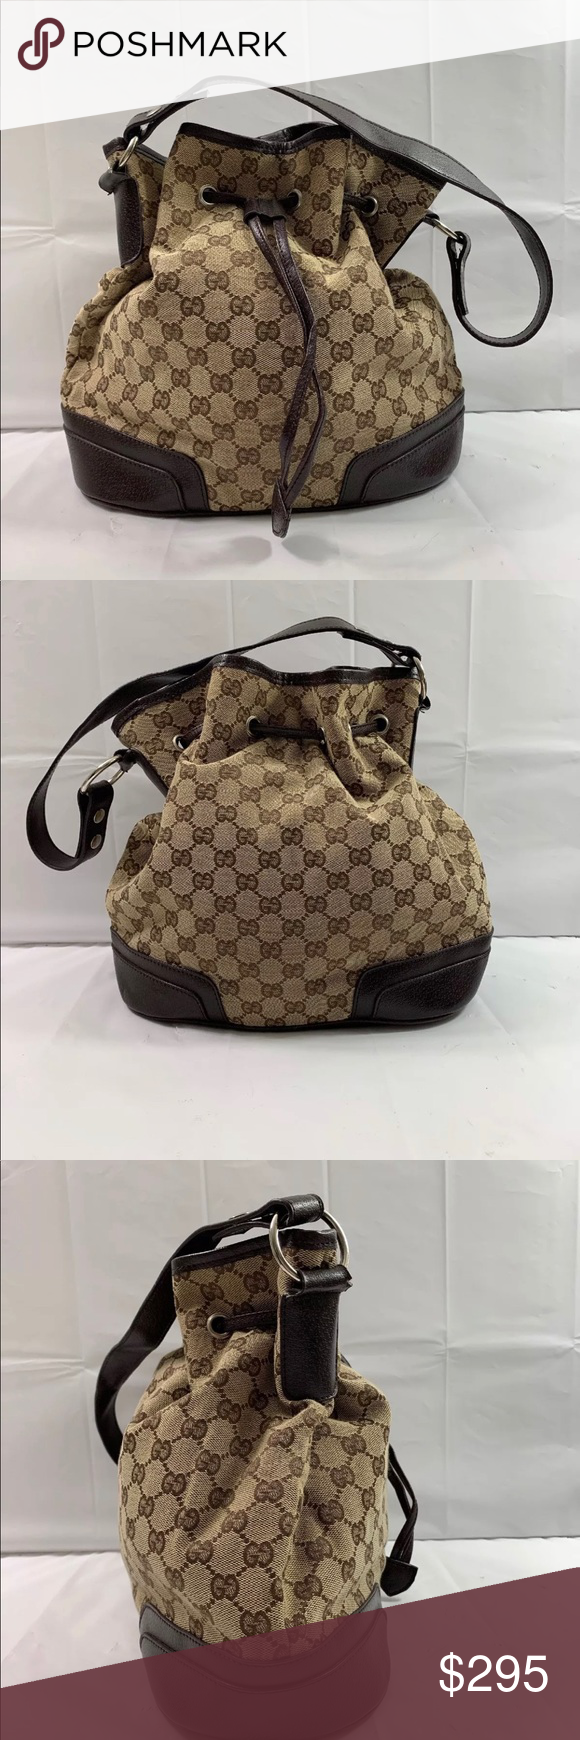 35ad4bd332e7 Shoulder Bags · Handbags · Gucci GG Canvas PVC Drawstring Handbag Purse Up  for your consideration I have a Gucci GG